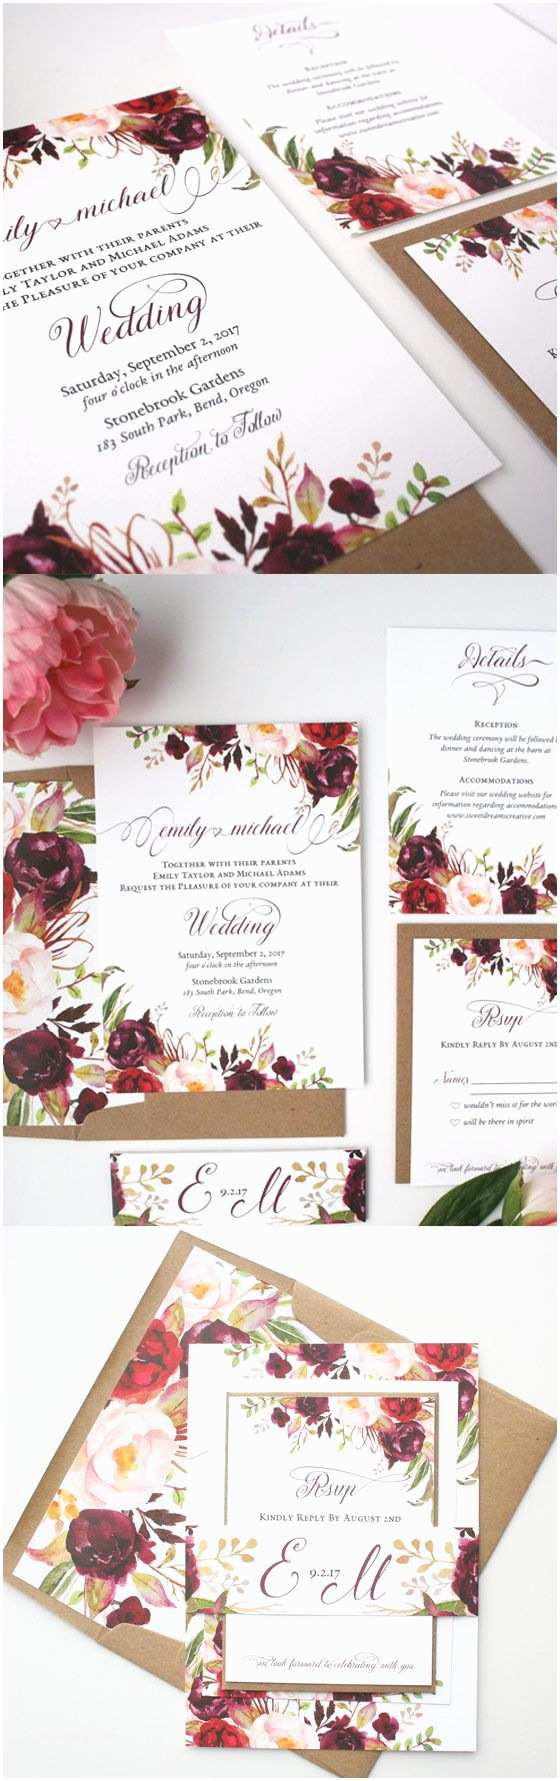 Beautiful Wedding Invitations Pinterest Neat Cool Party Invitations Purple and Black Beautiful